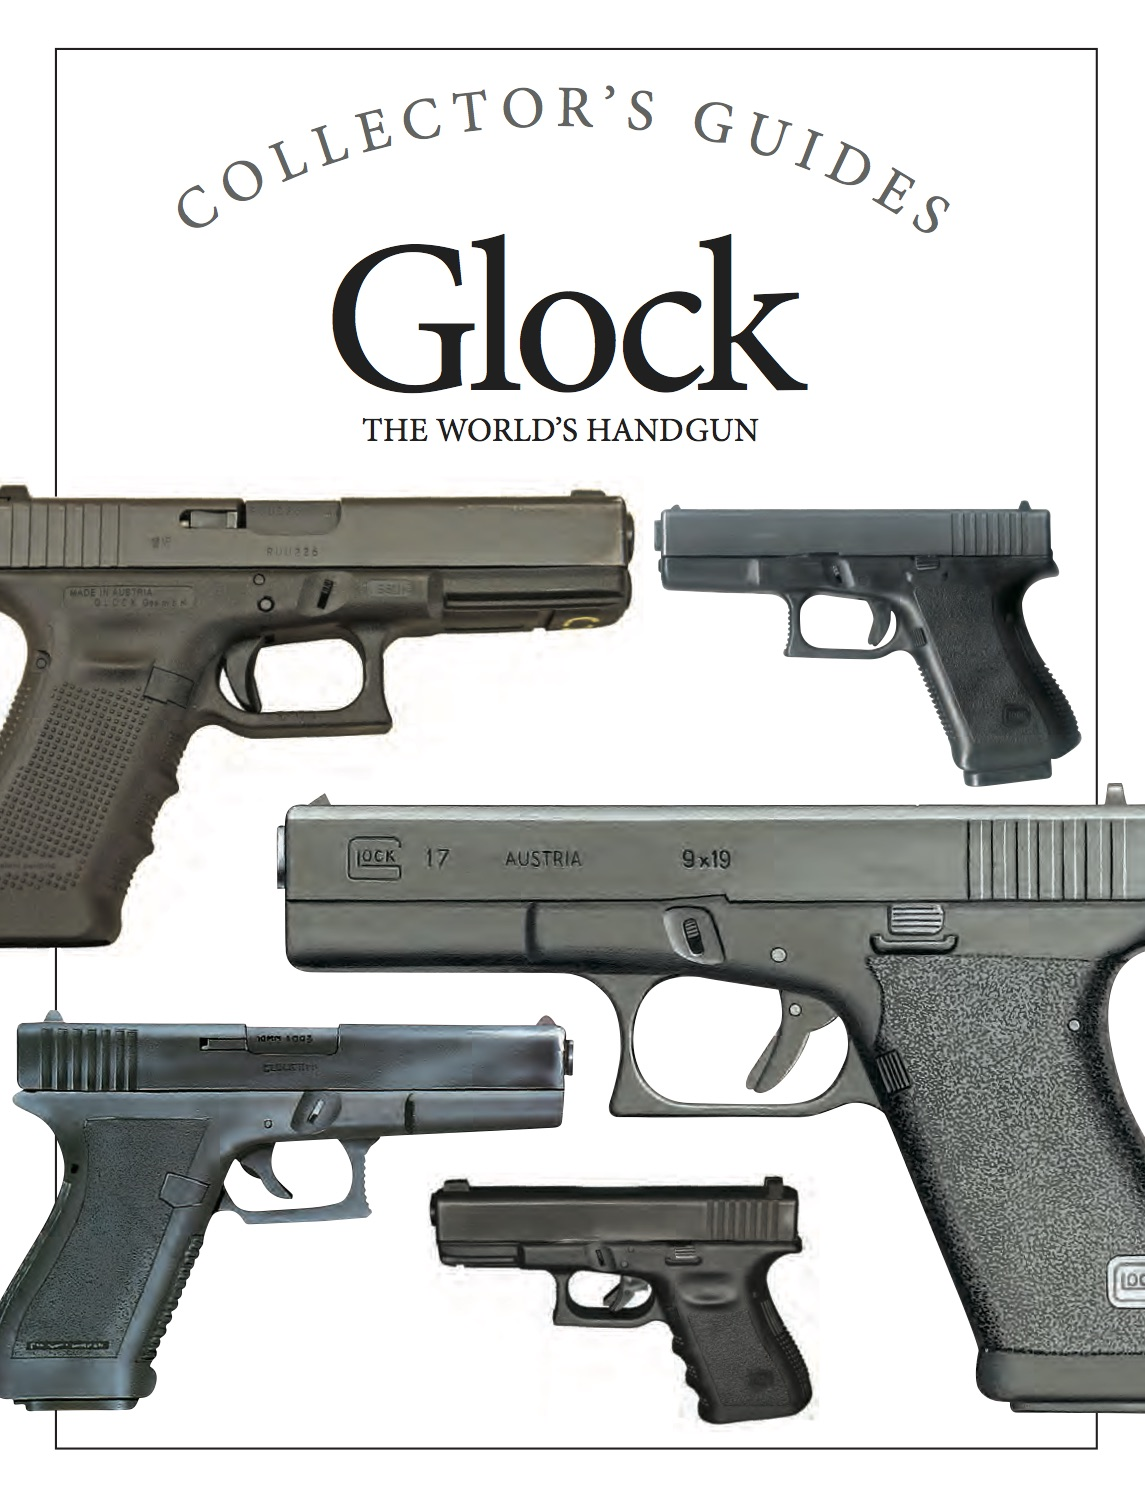 Collector's Guides: Glock